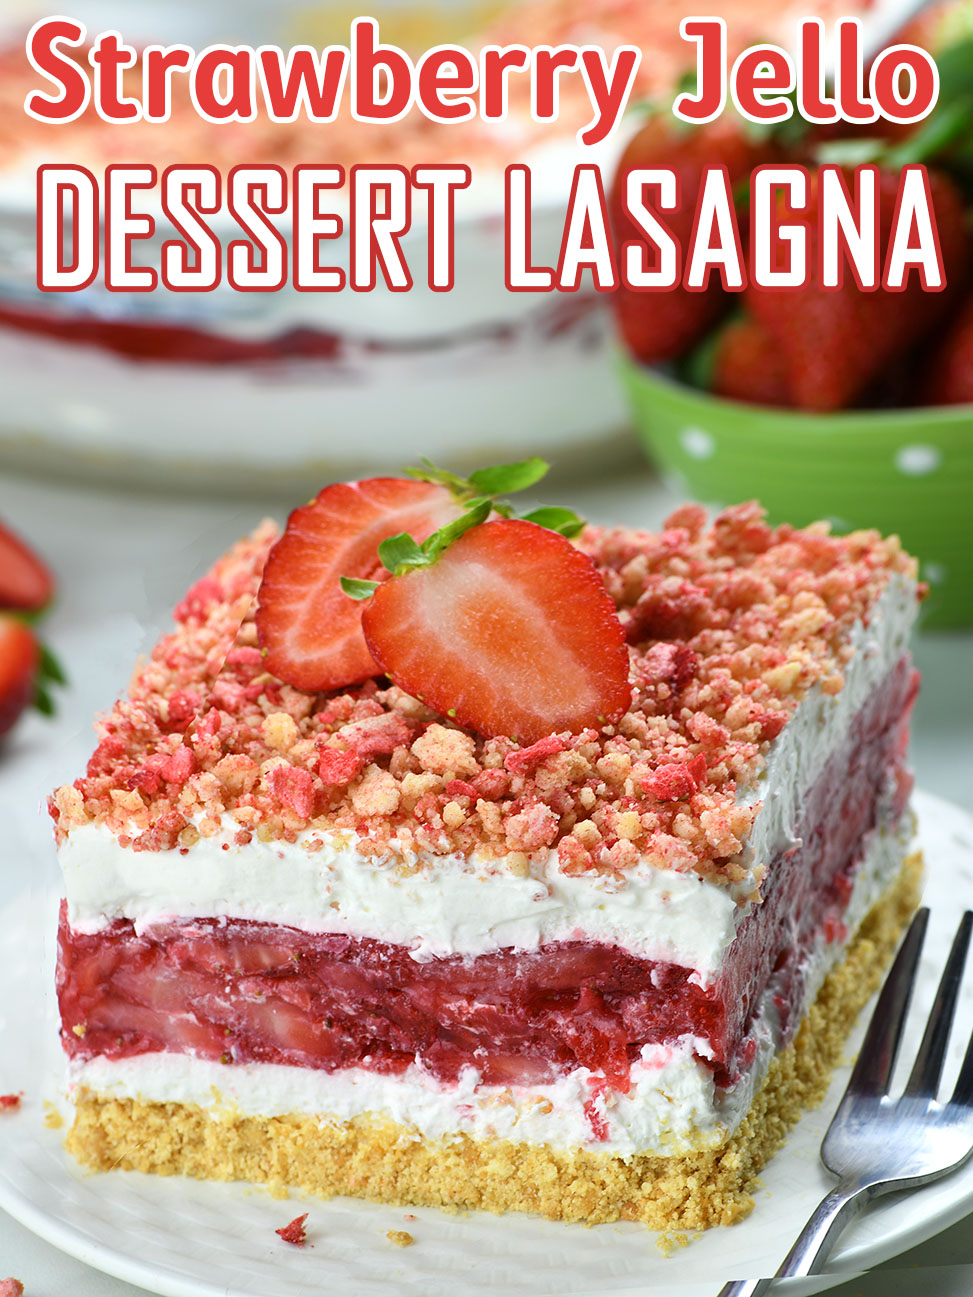 Strawberry Jello lasagnaStrawberry Jello Lasagna - Easy No-Bake Strawberry Dessert